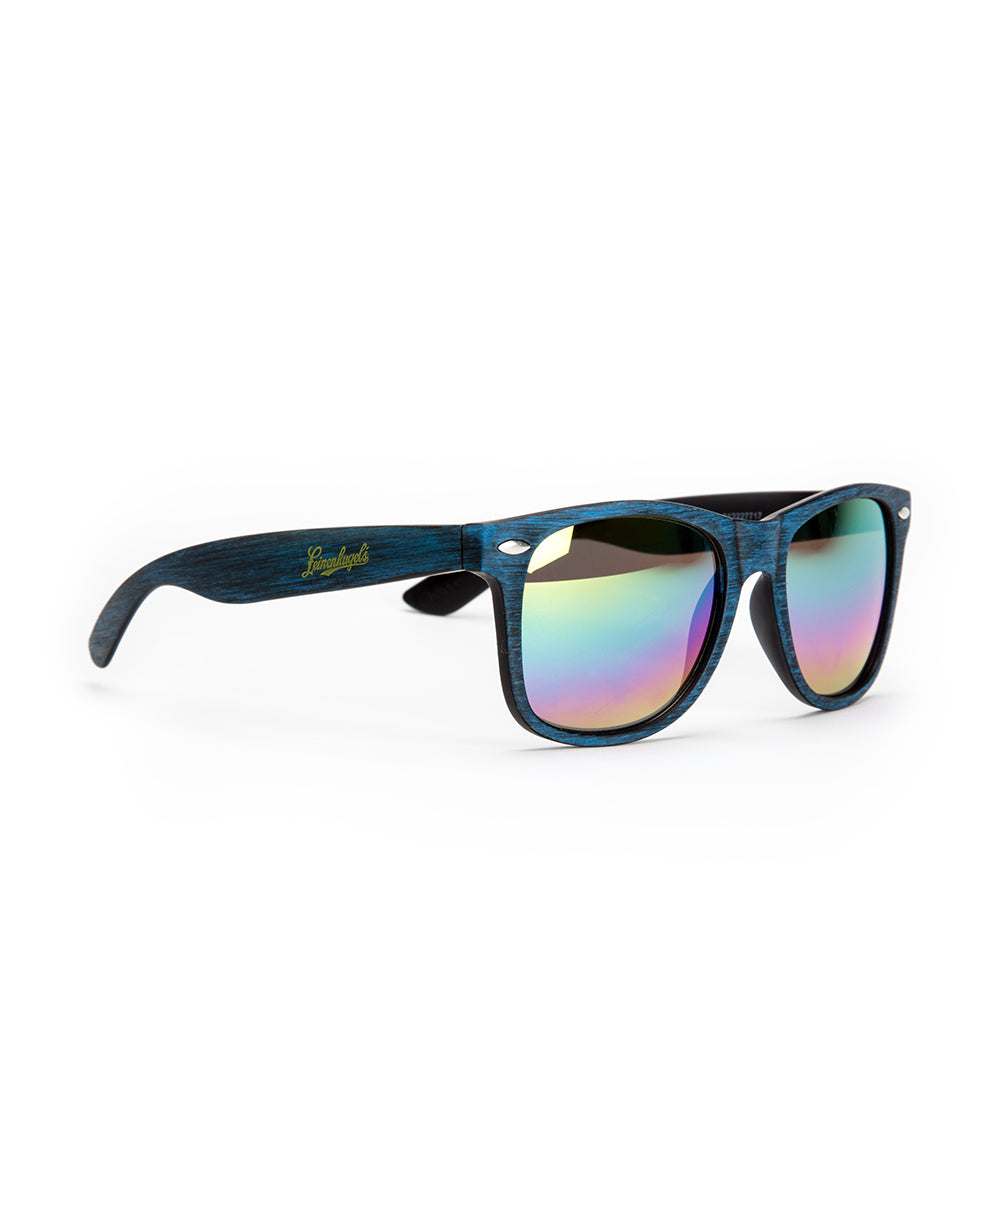 SHANDY MIRRORED SUNGLASS